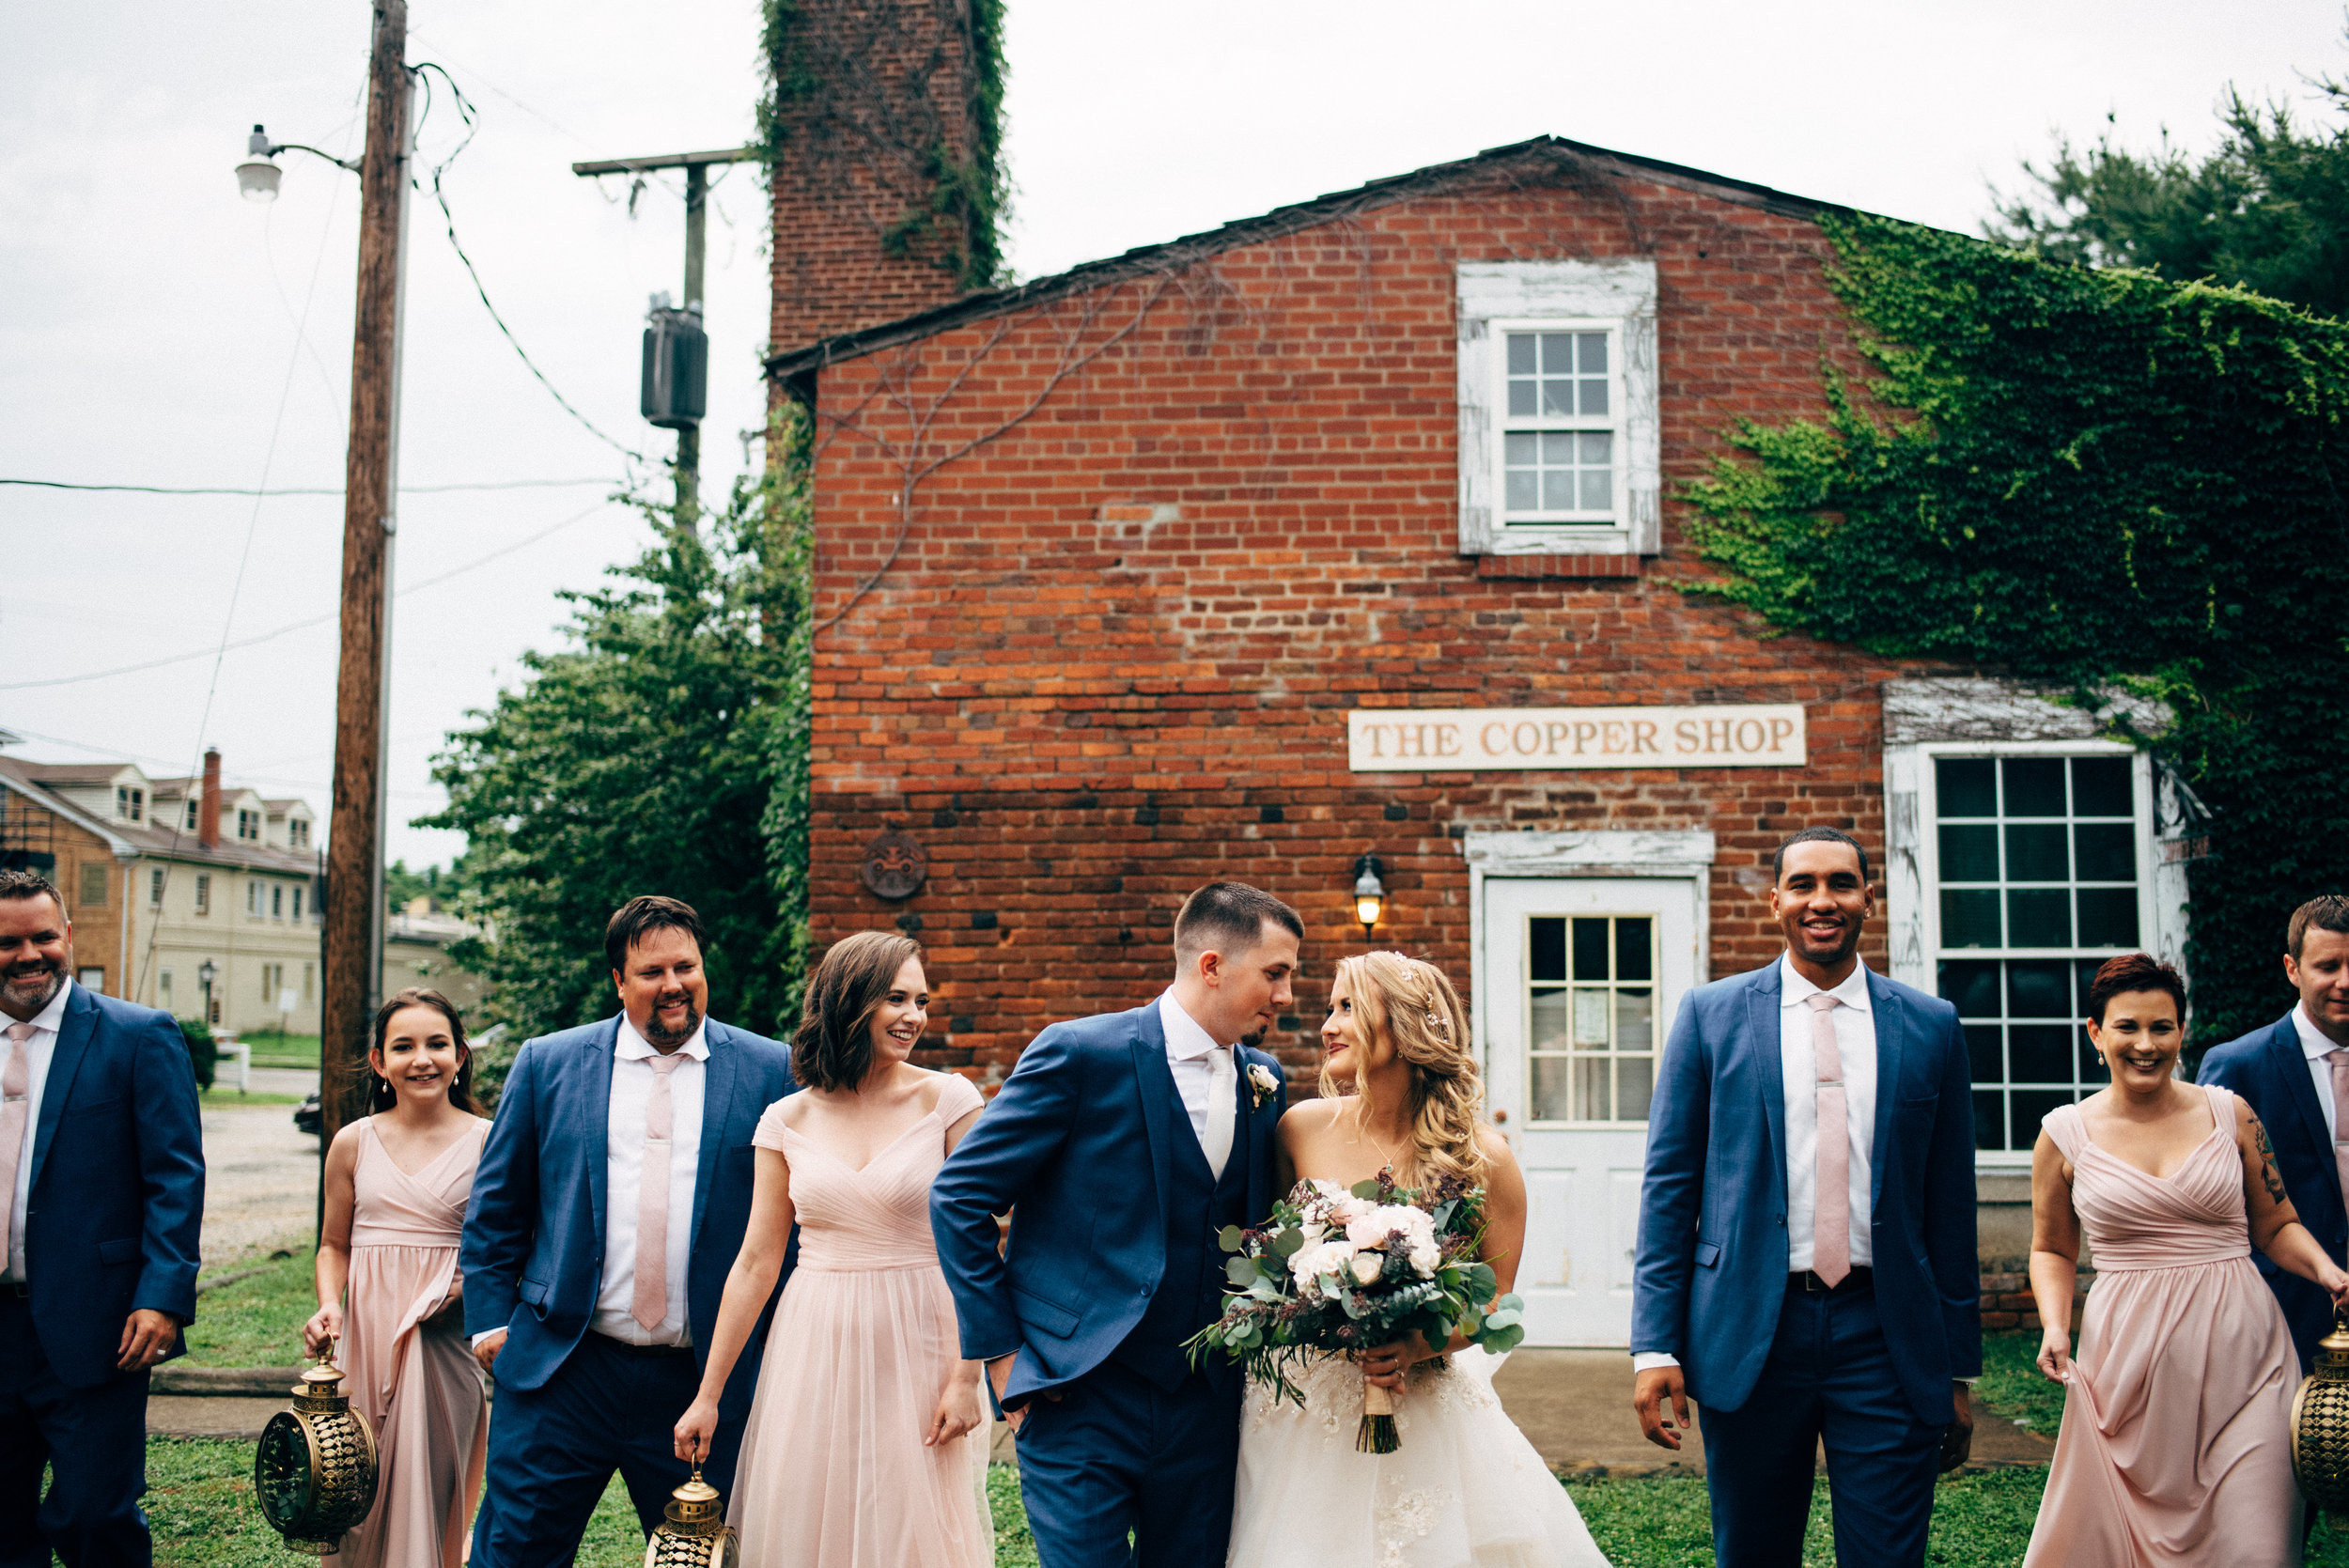 newly married bride and groom look at each other while bridal party looks on